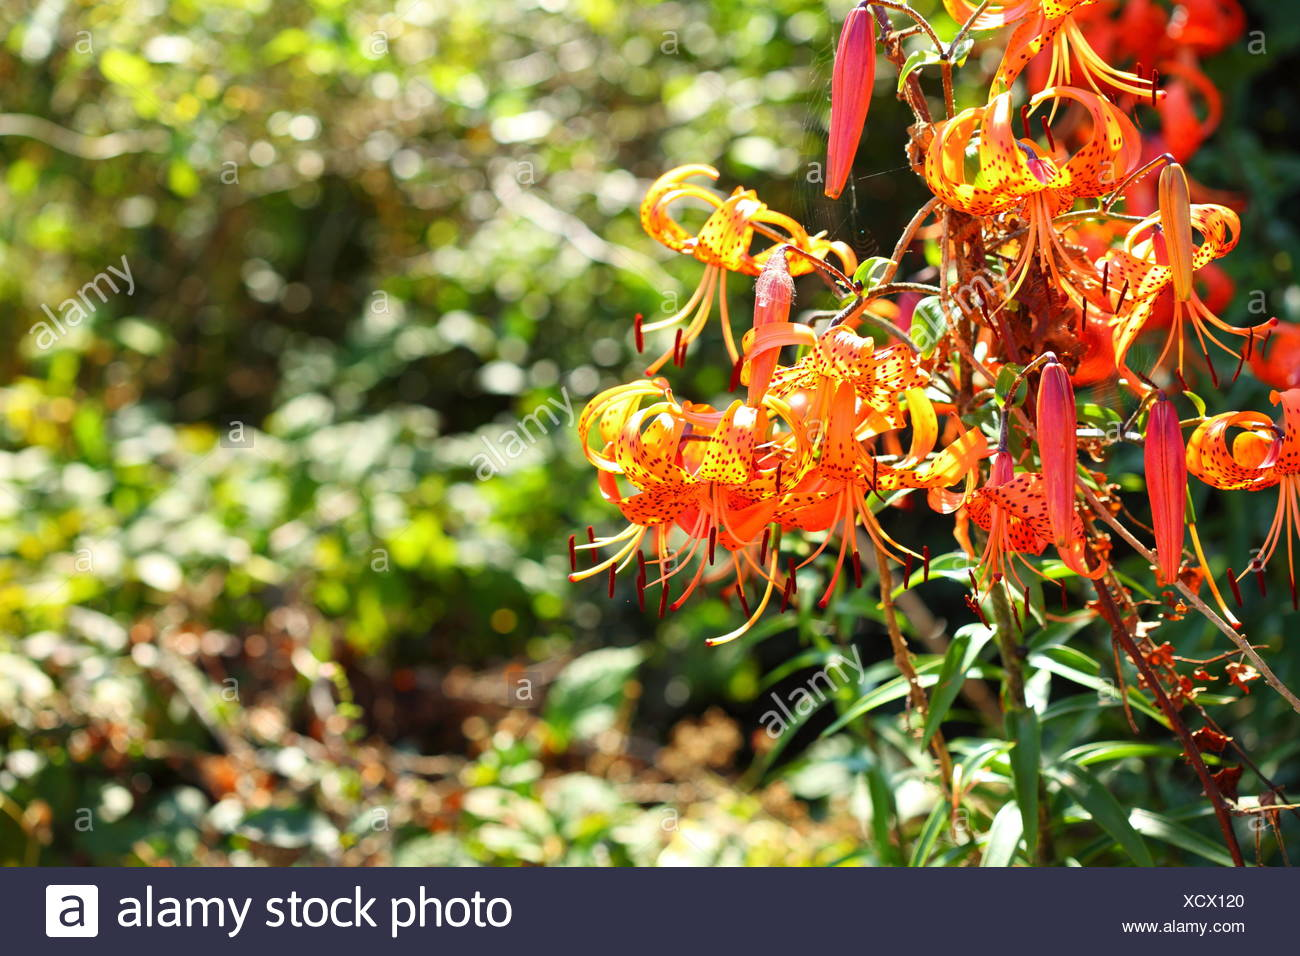 Orange Lily Flowers Lilies In Garden Outdoor Stock Photo